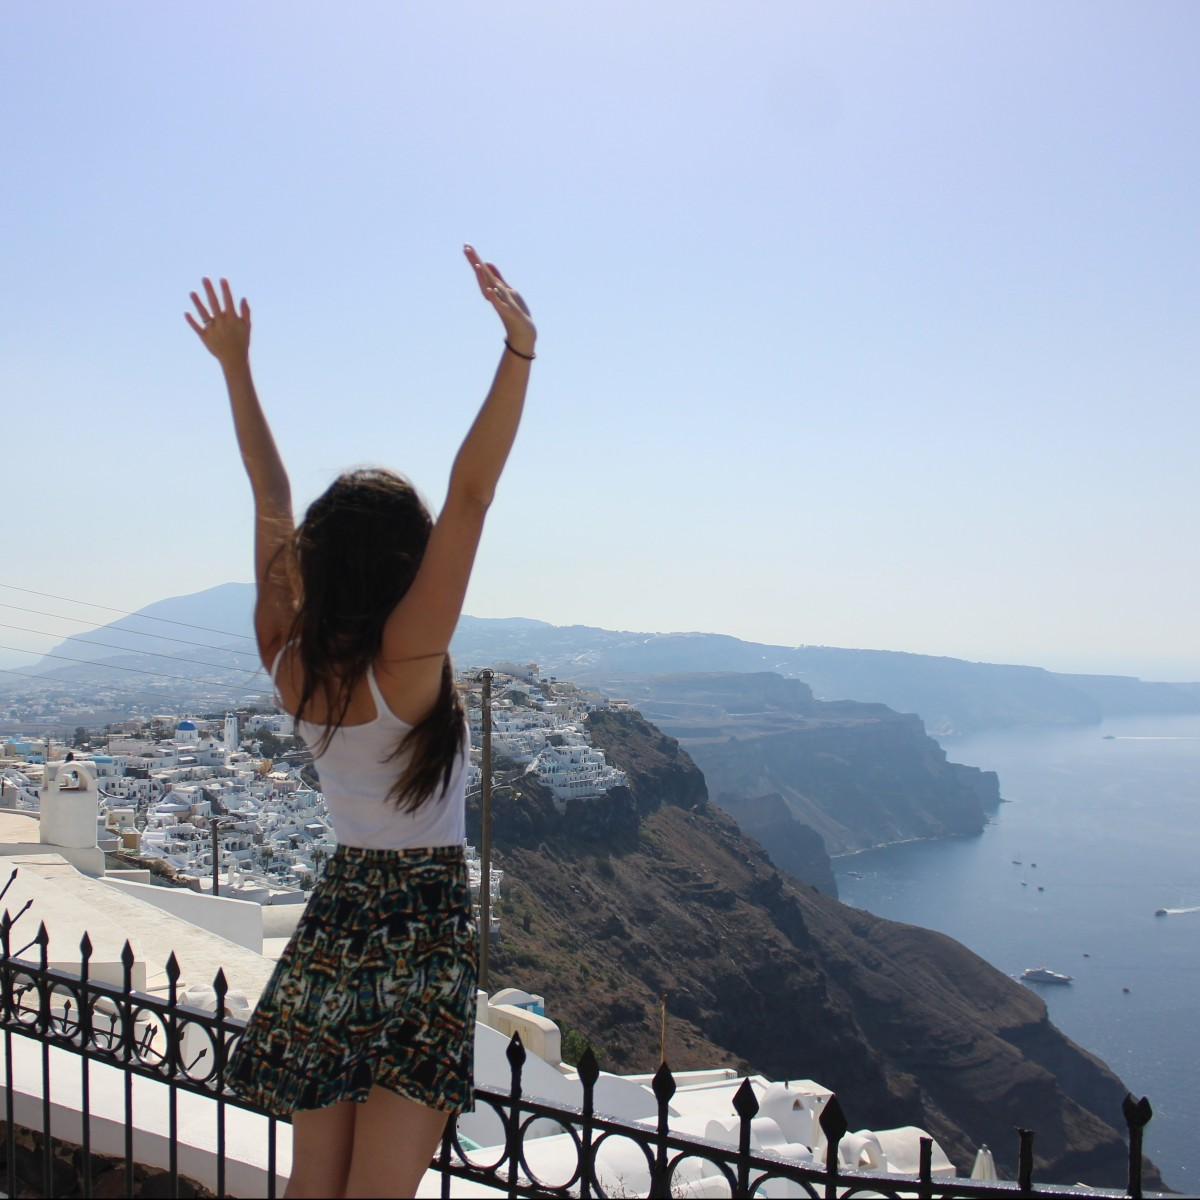 Santorini: Killer Sunsets and Caldera Views (Bikini.com)